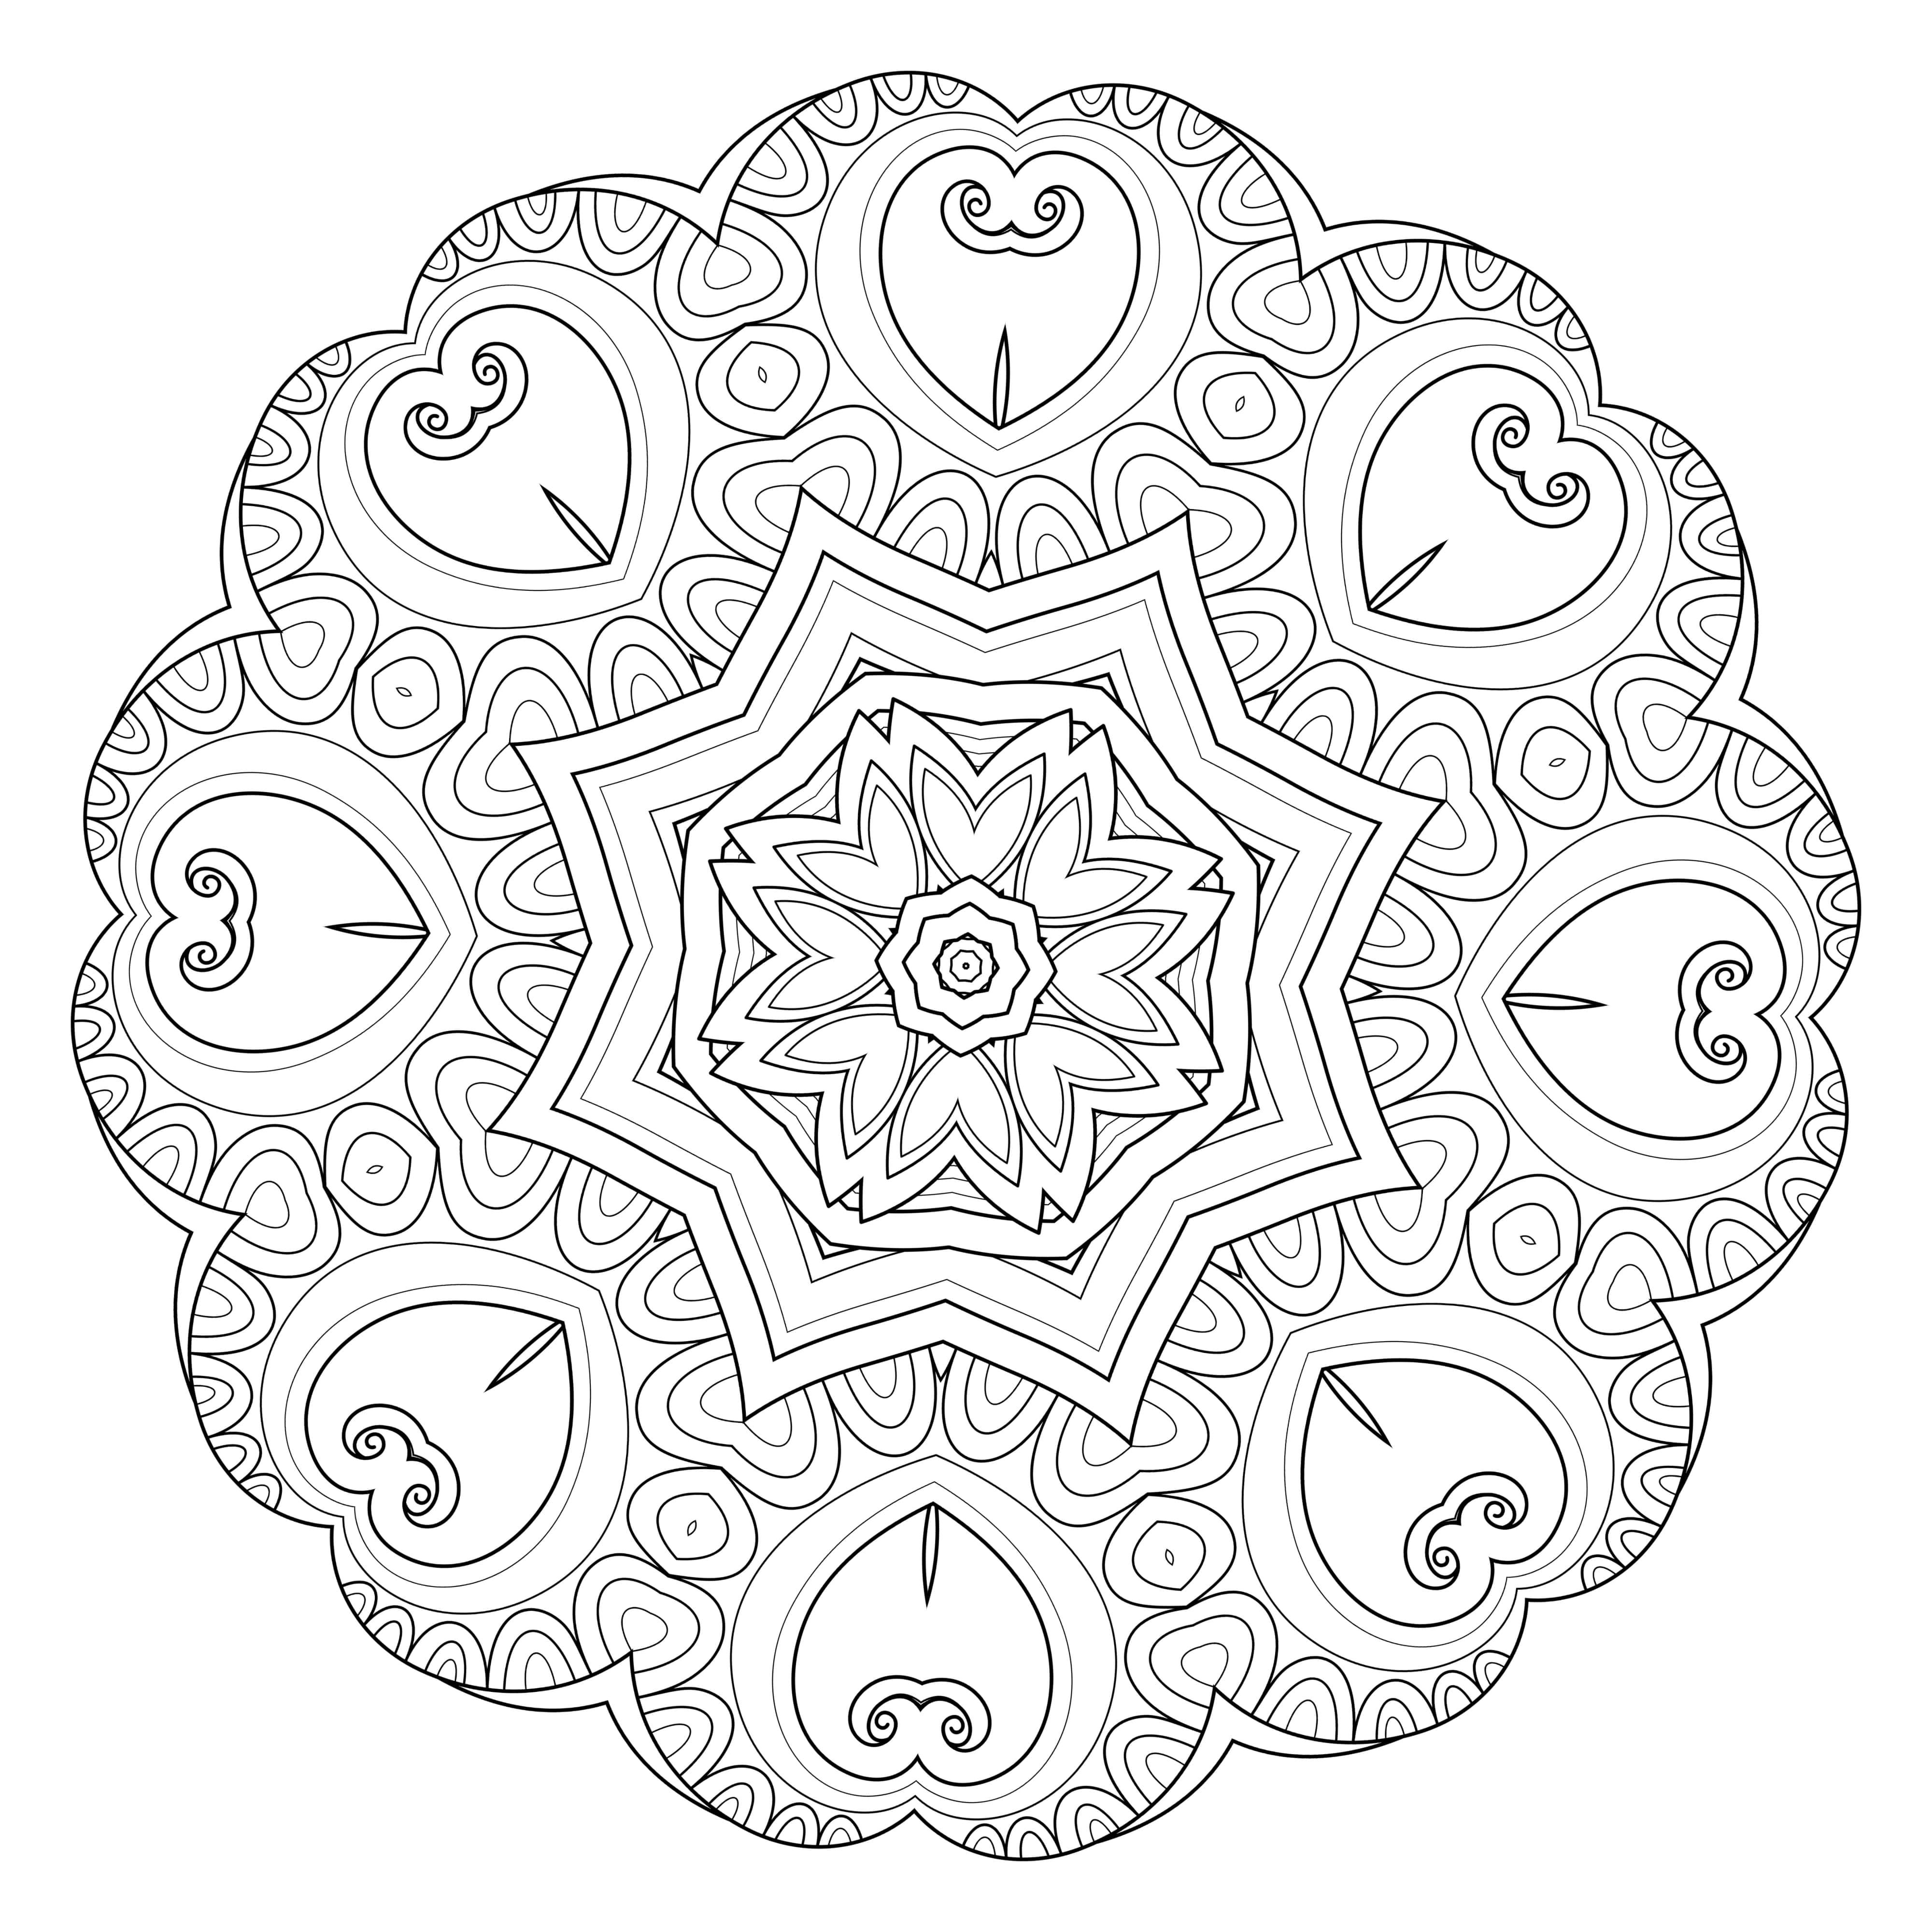 Lifestyle And Productivity The Maven Circle Mandala Coloring Pages Mandala Coloring Coloring Pages